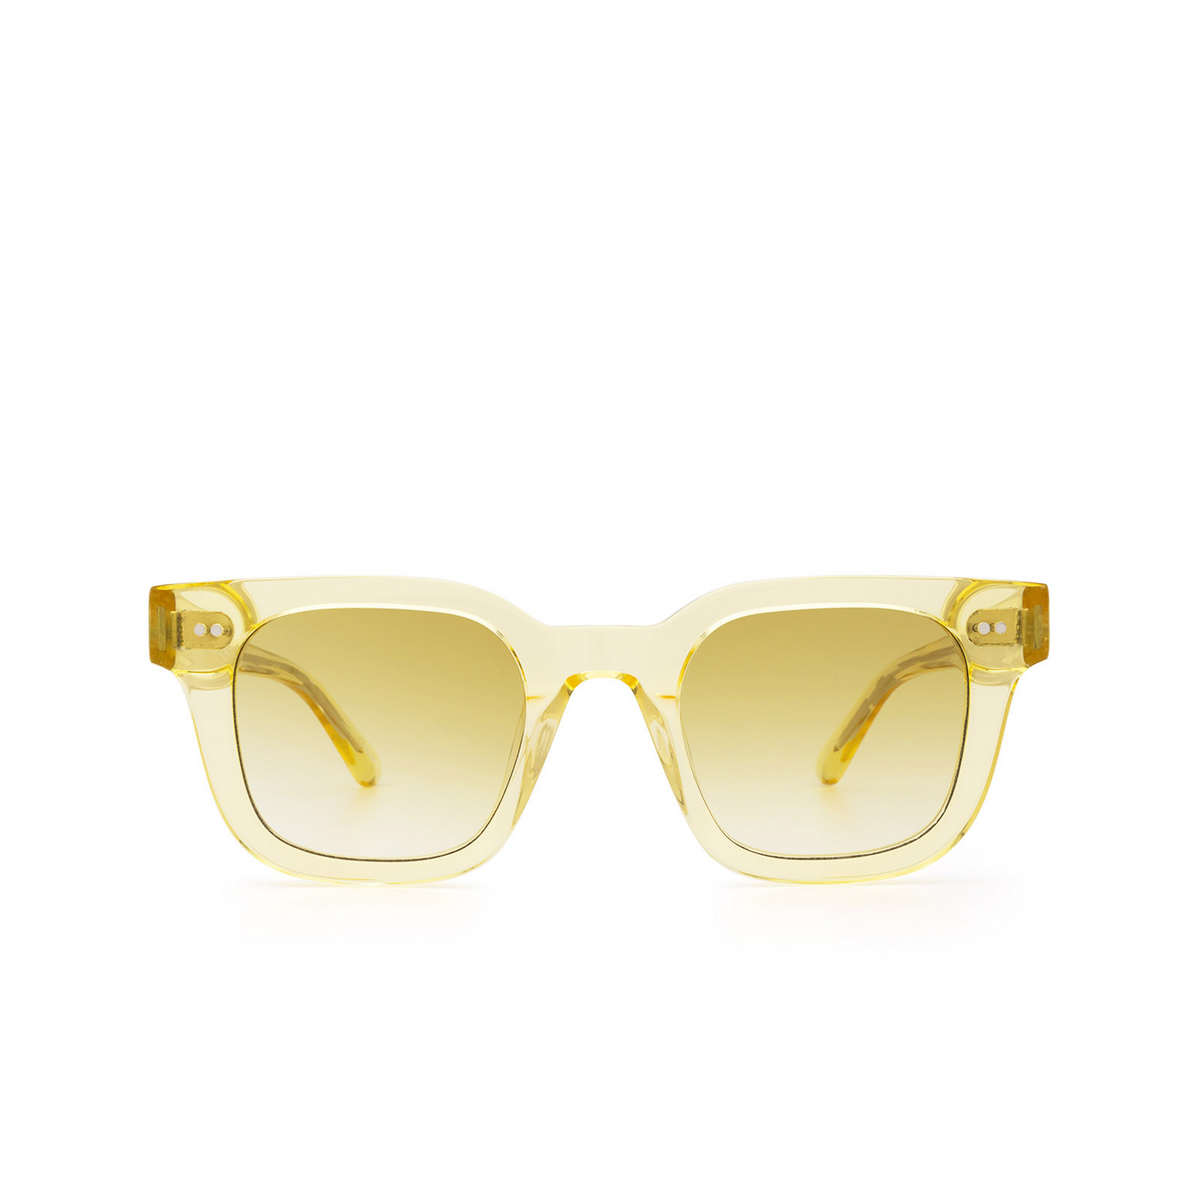 Chimi® Square Sunglasses: 04 color Yellow - front view.